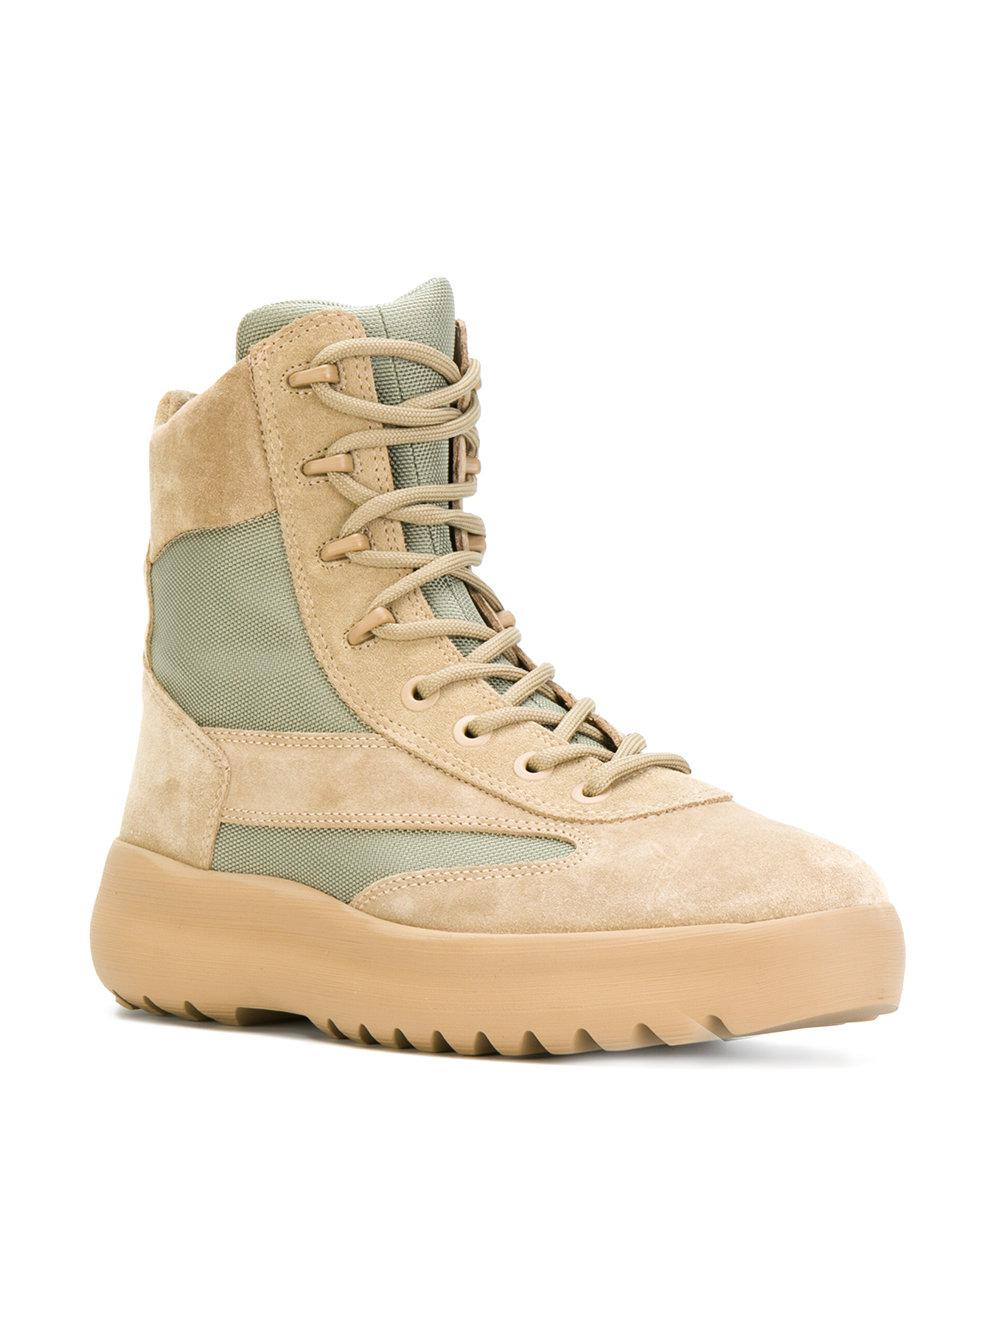 Yeezy Panelled high top sneakers 0PW5YjG1